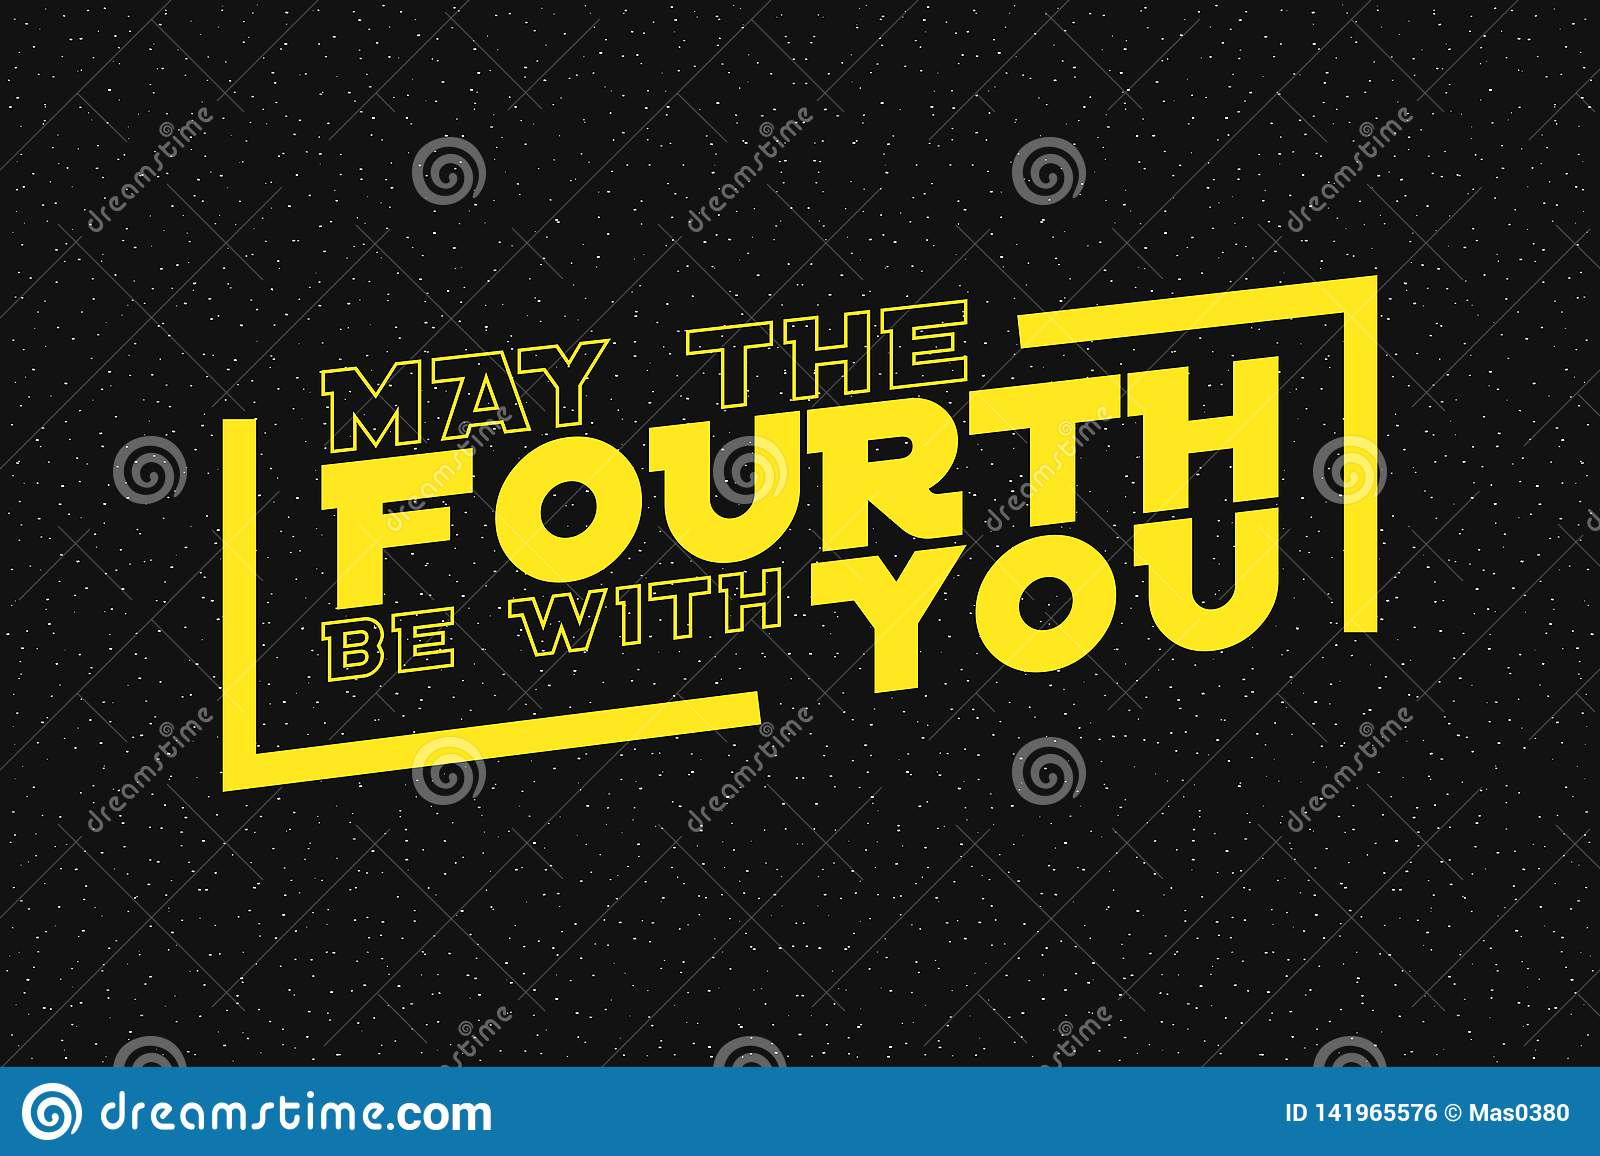 May The Fourth Be With You Lettering On Starry Background Design